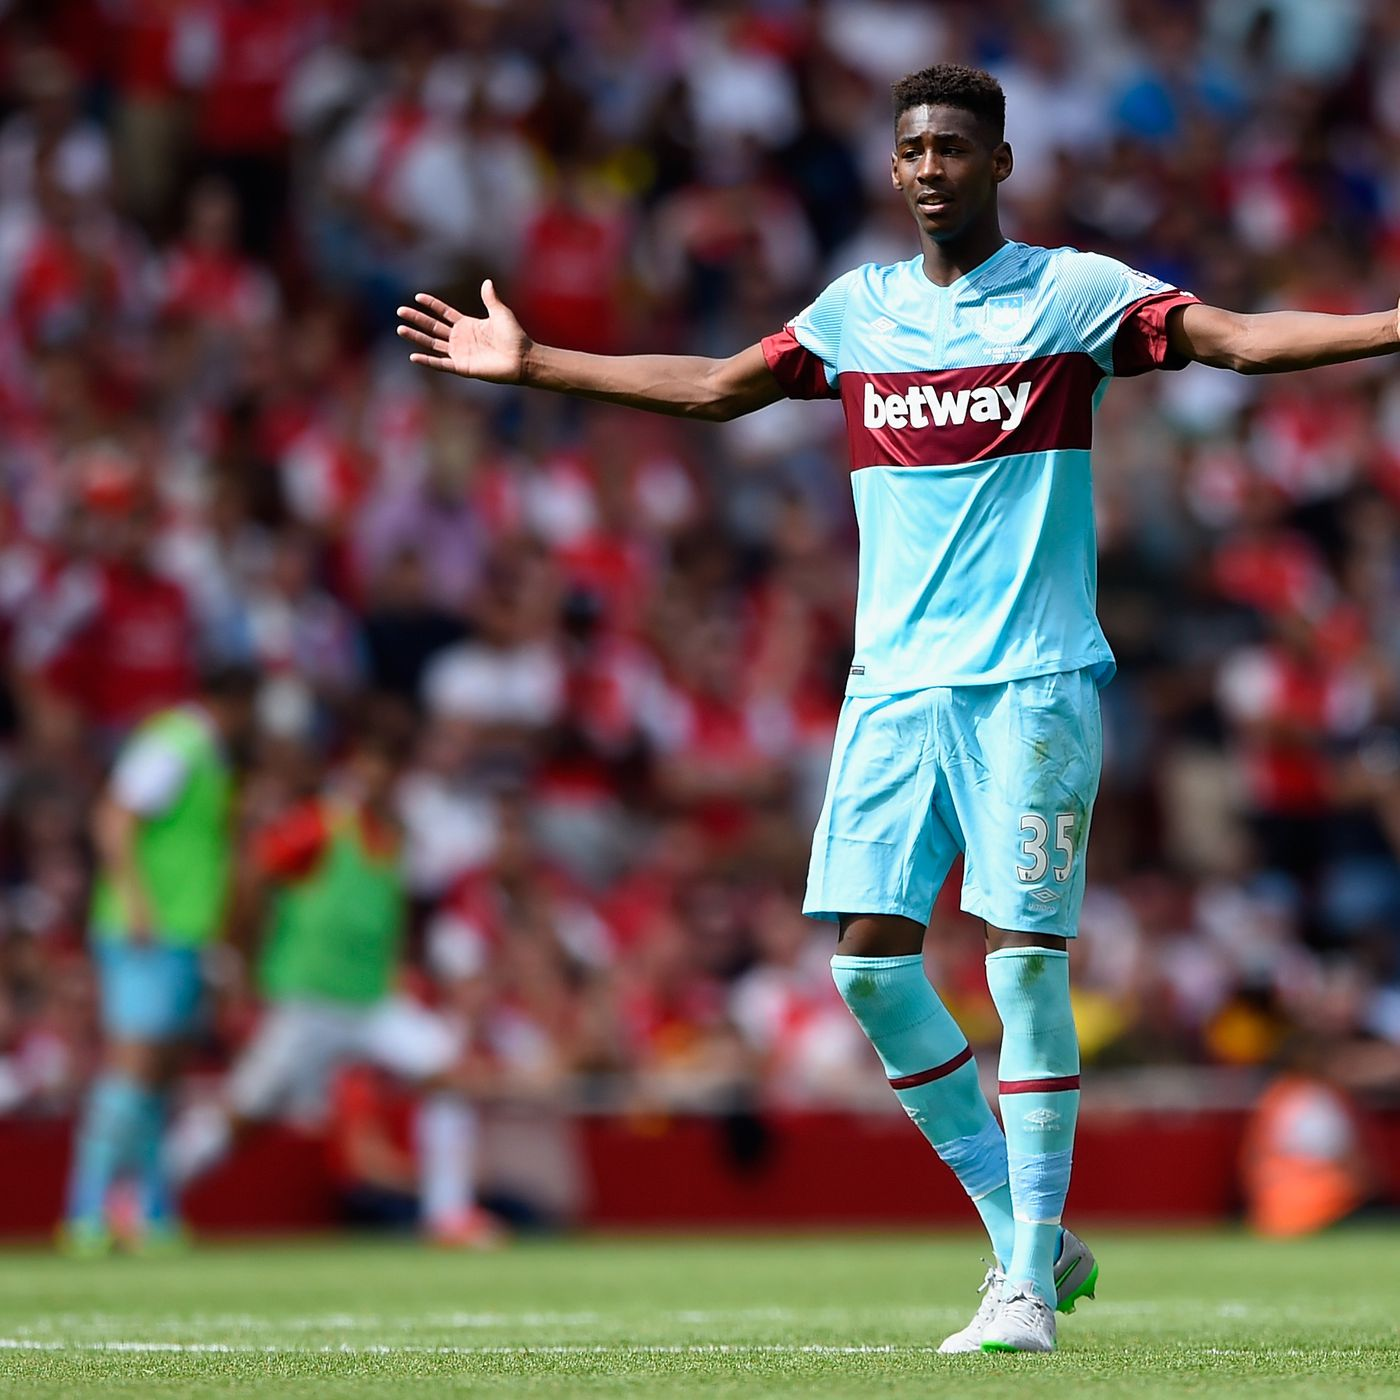 tien ve tre phong ngu hay nhat the gioi - Reece Oxford